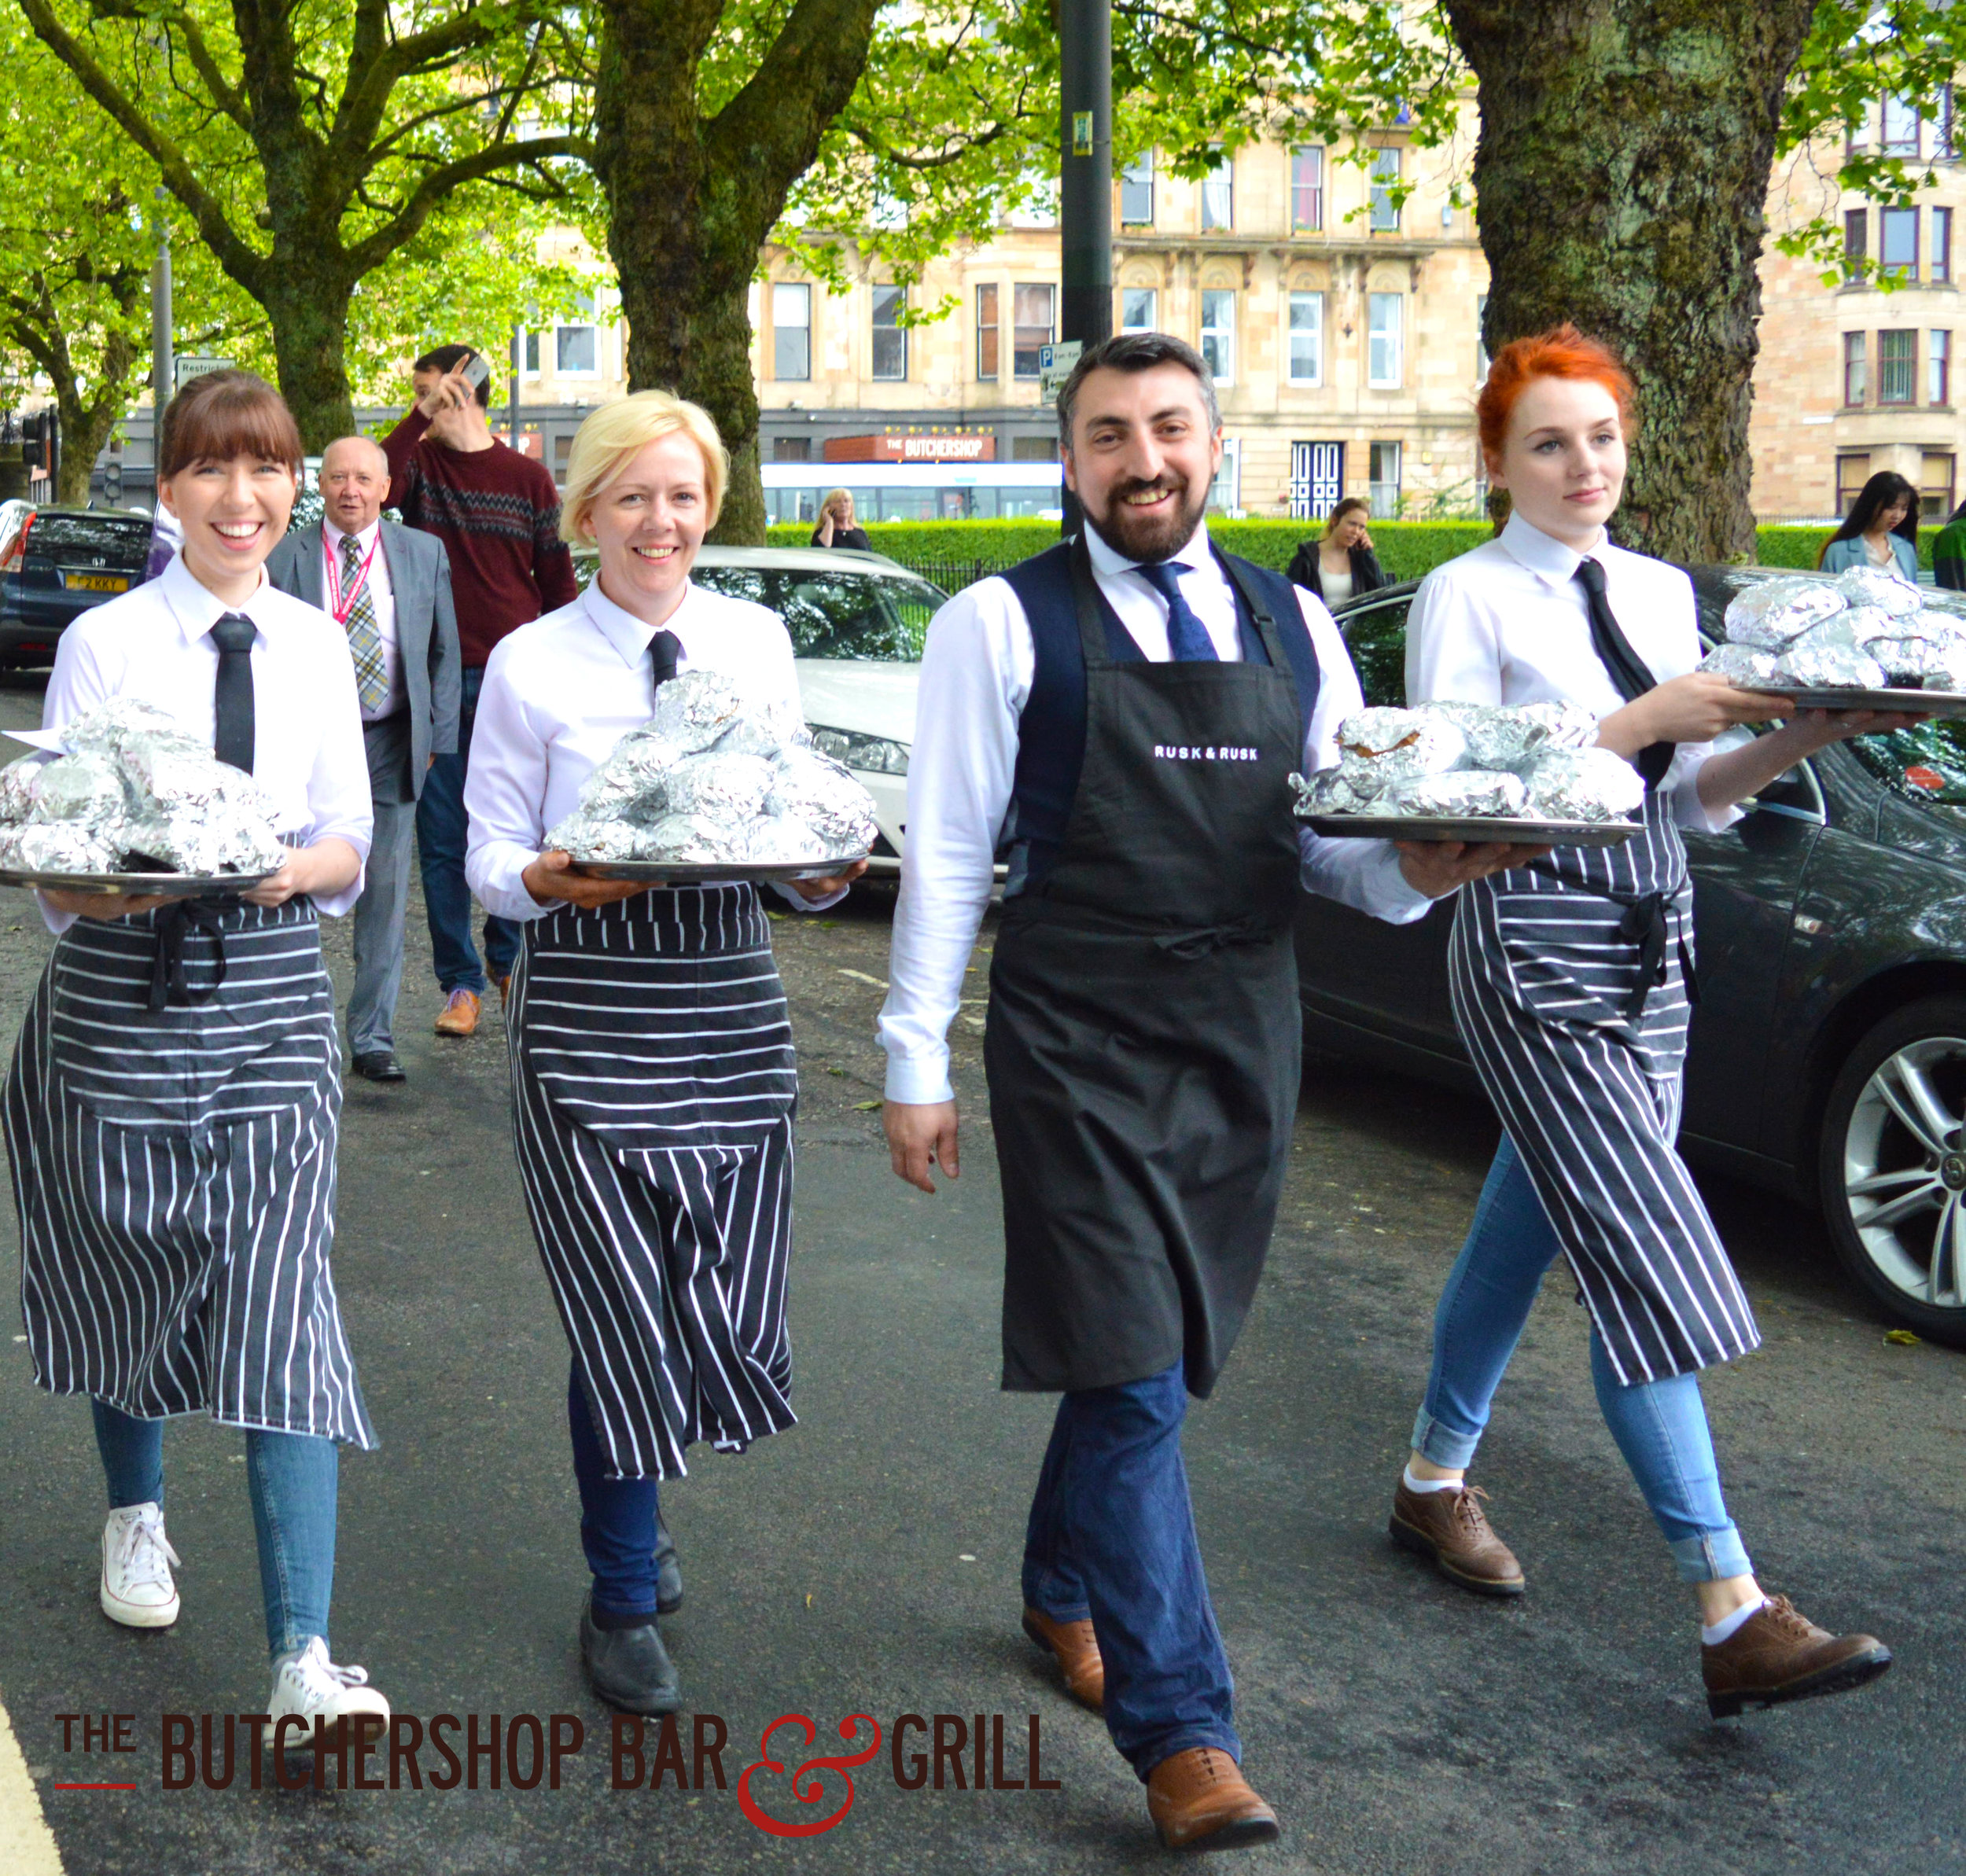 Manager Chris Kelly leading his team from The Butchershop, rolls in hand.